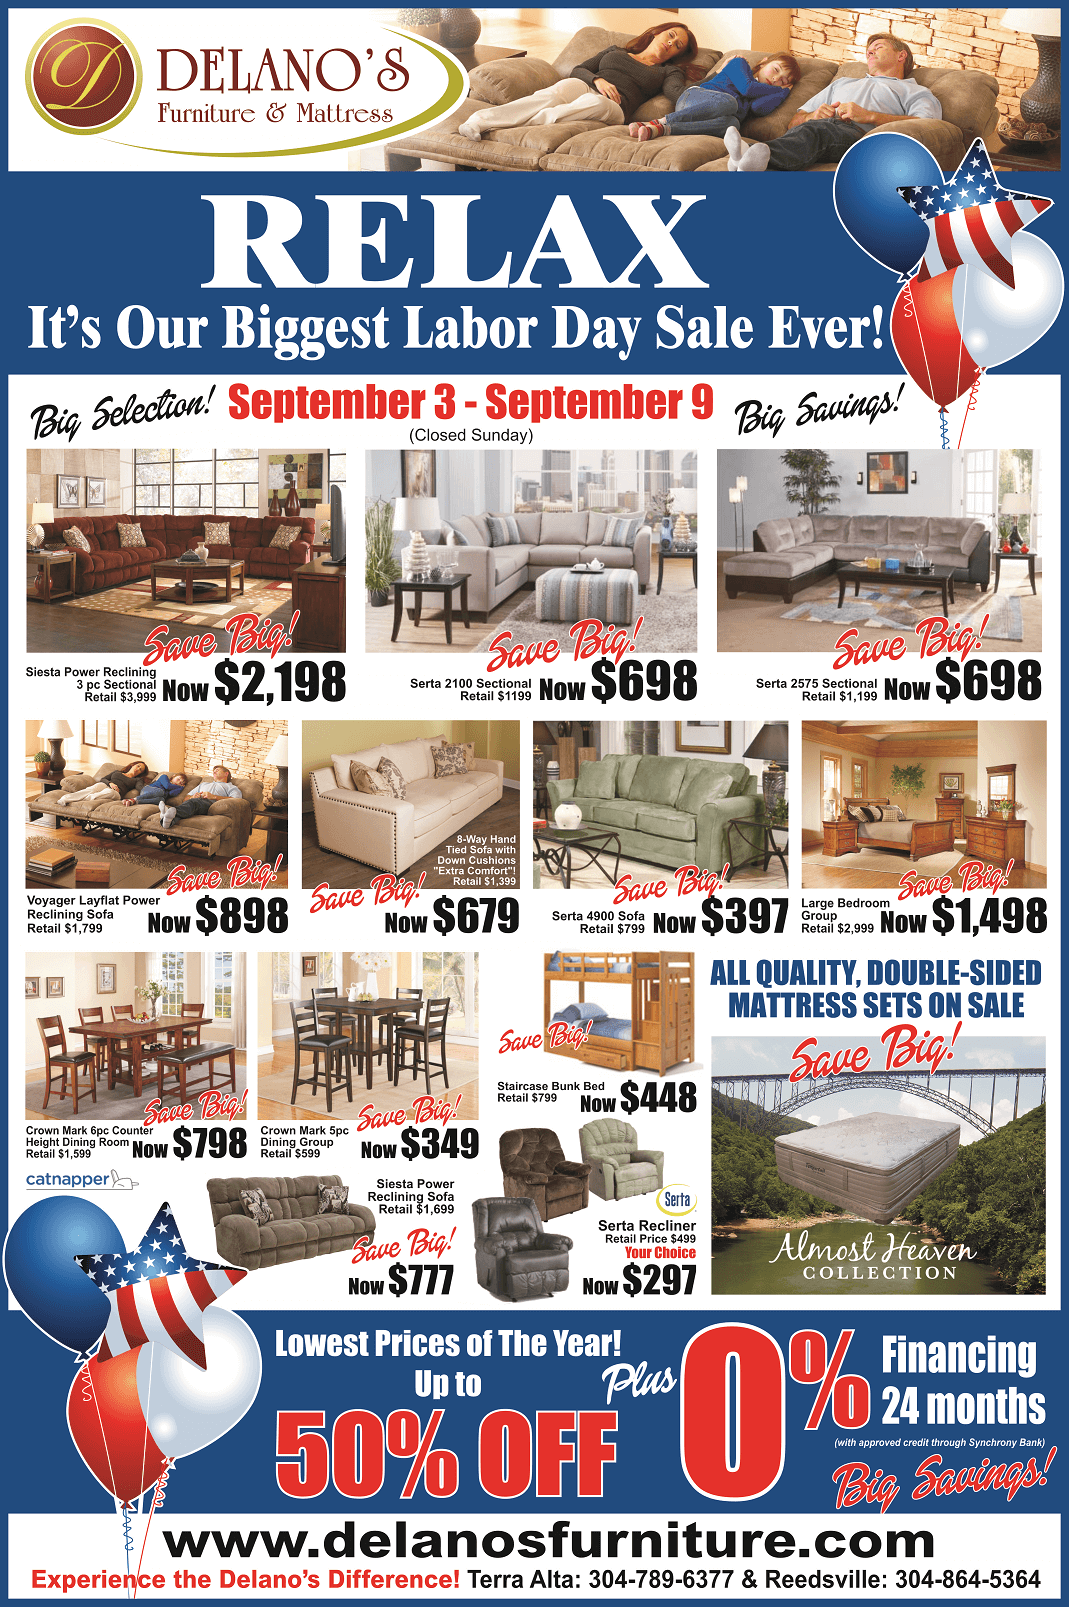 Lowest Prices of the Year - Furniture in Preston County WV